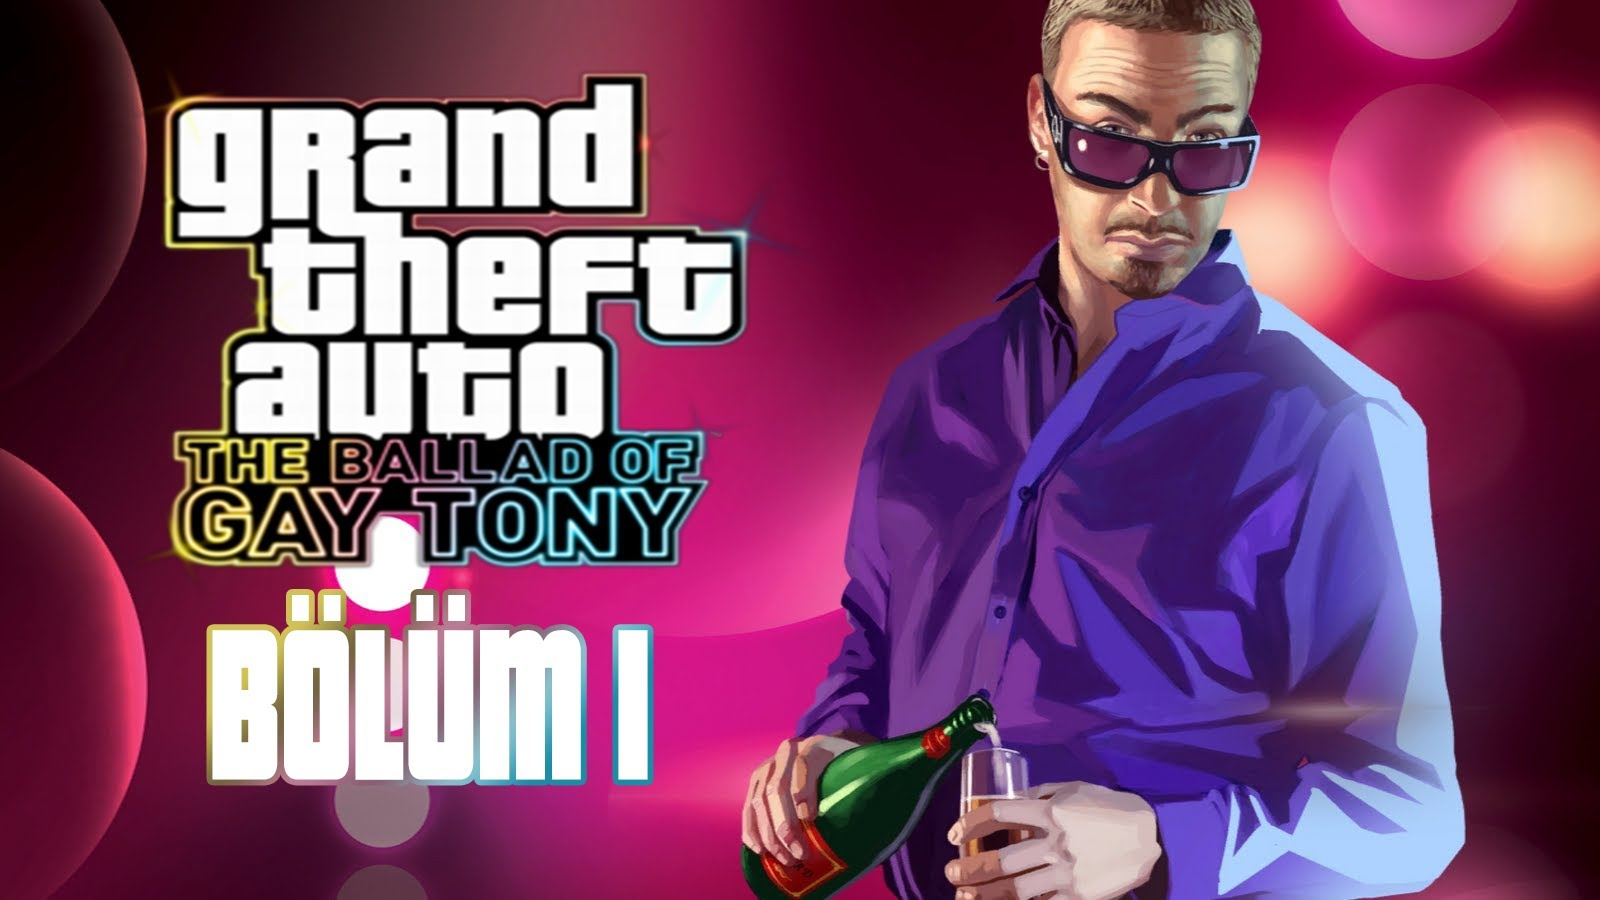 Images of Grand Theft Auto: Ballad Of Gay Tony | 1600x900